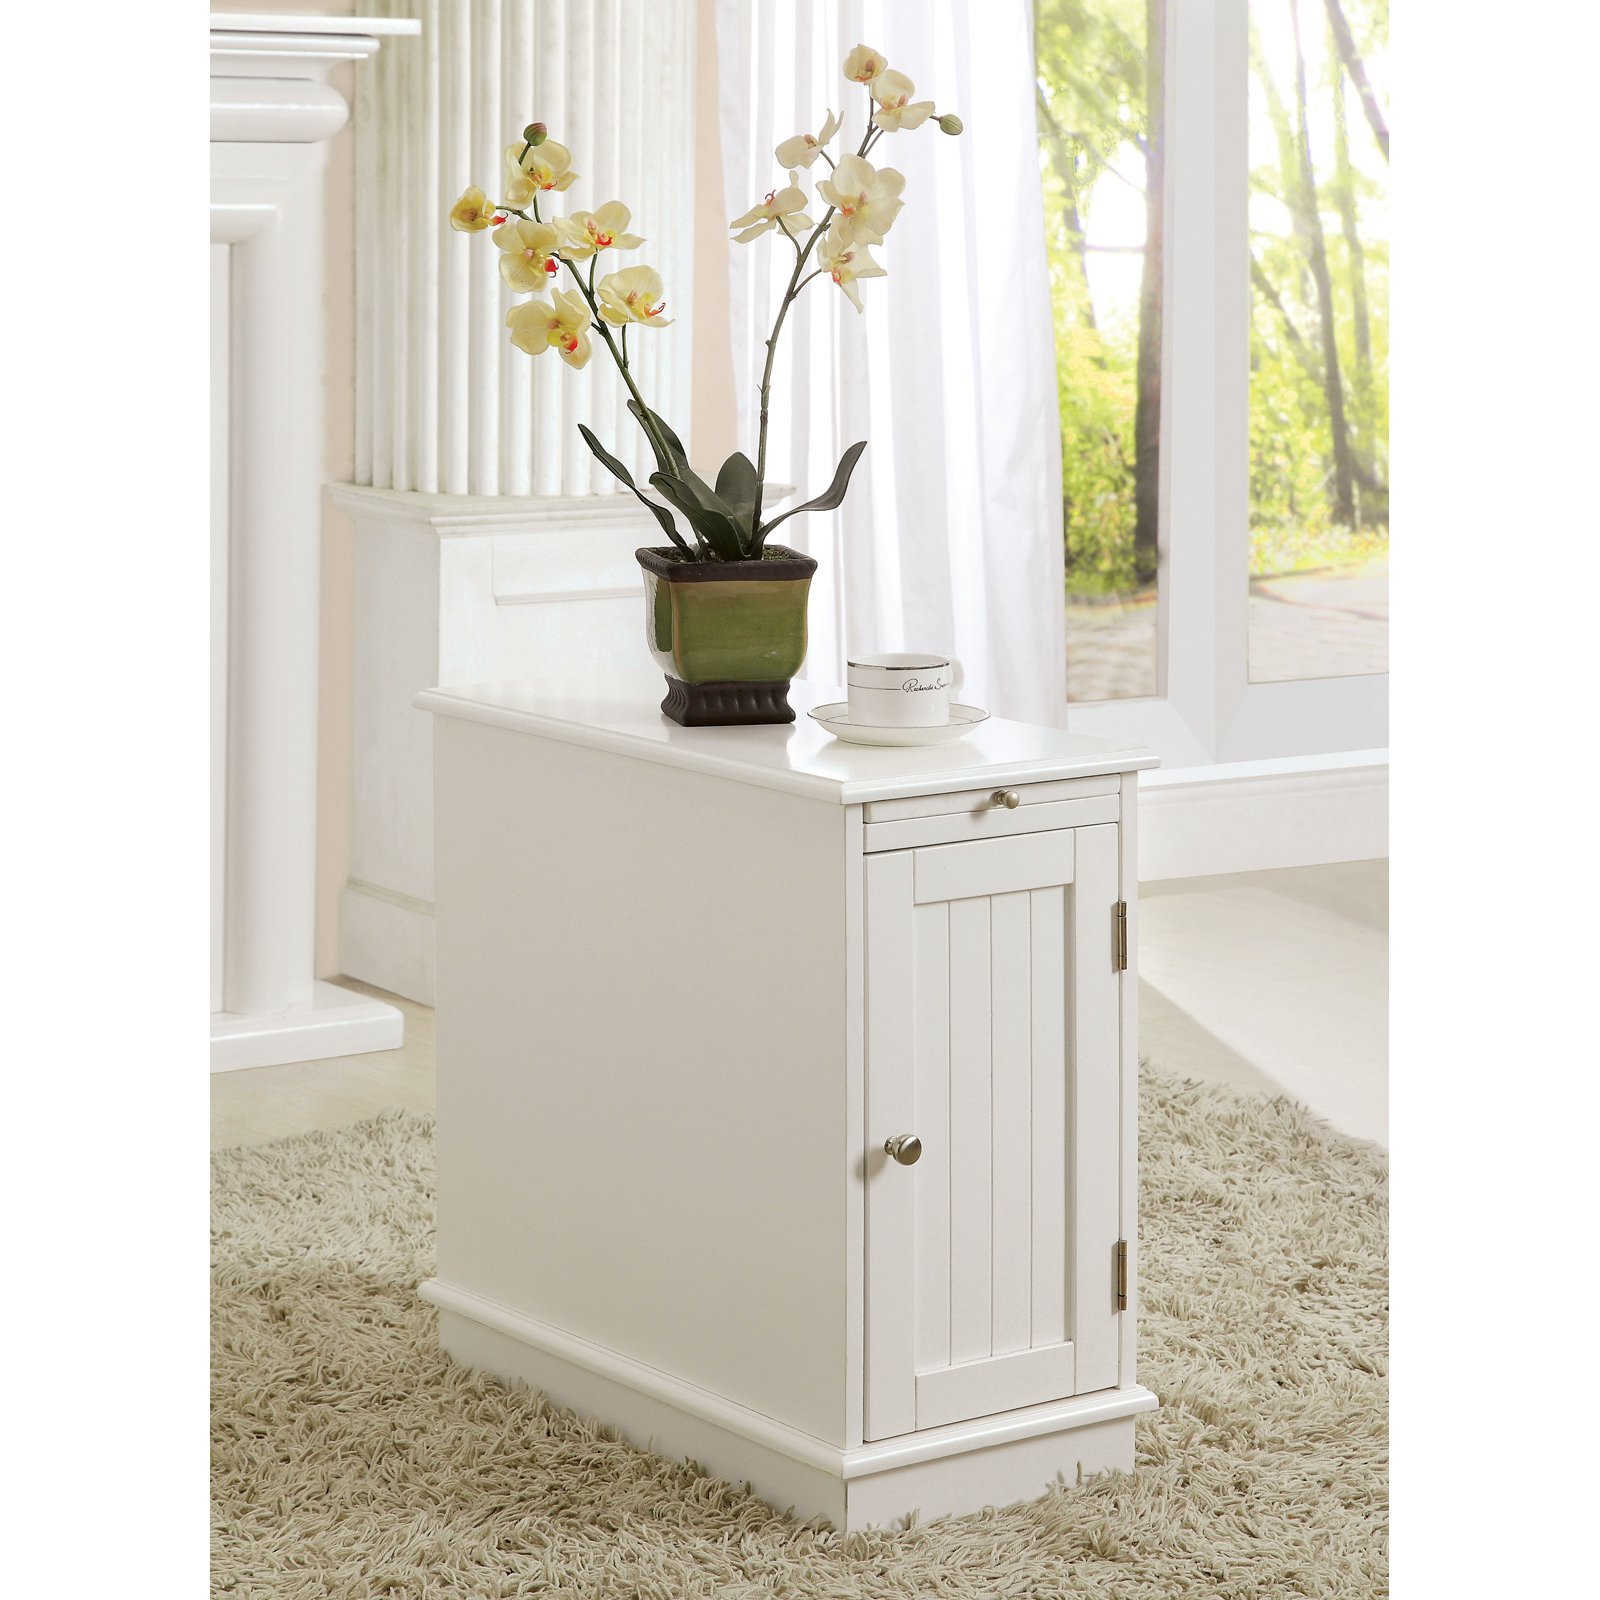 Furniture of America Martine Side Accent Table with Beverage Tray White by Enitial Lab